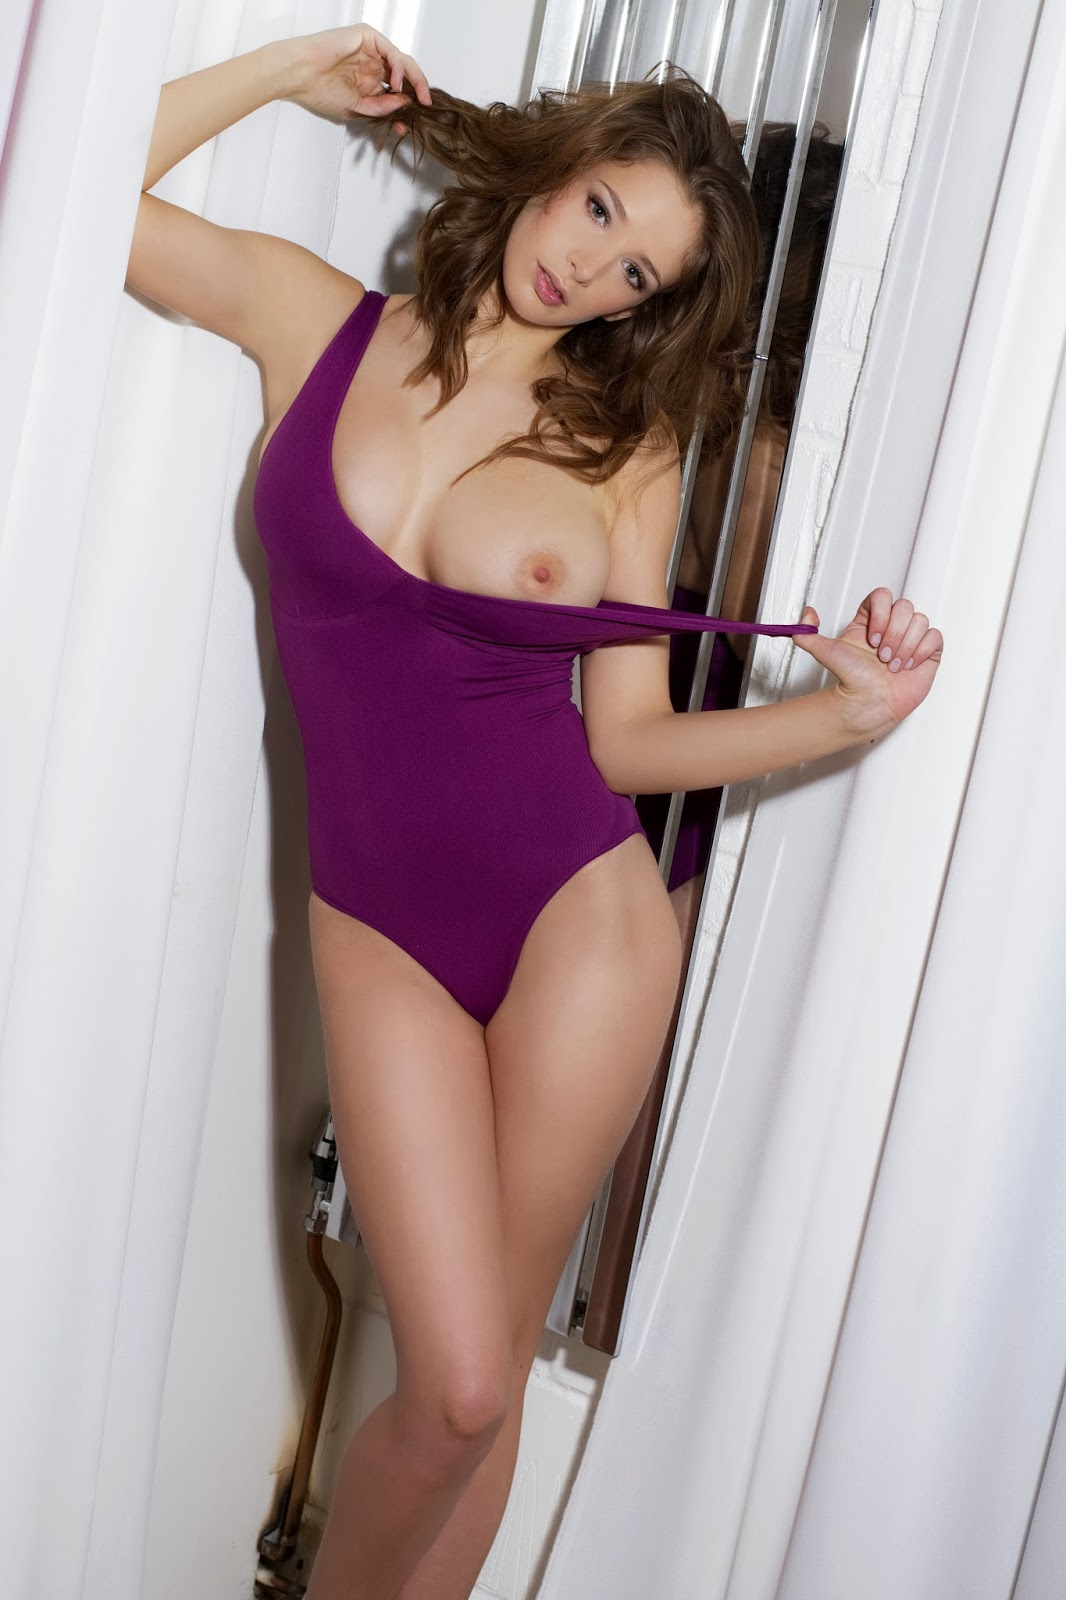 Emily Shaw Topless Purple Swimsuit Photoshoot By Frank White www.GutterUncensored.com 001